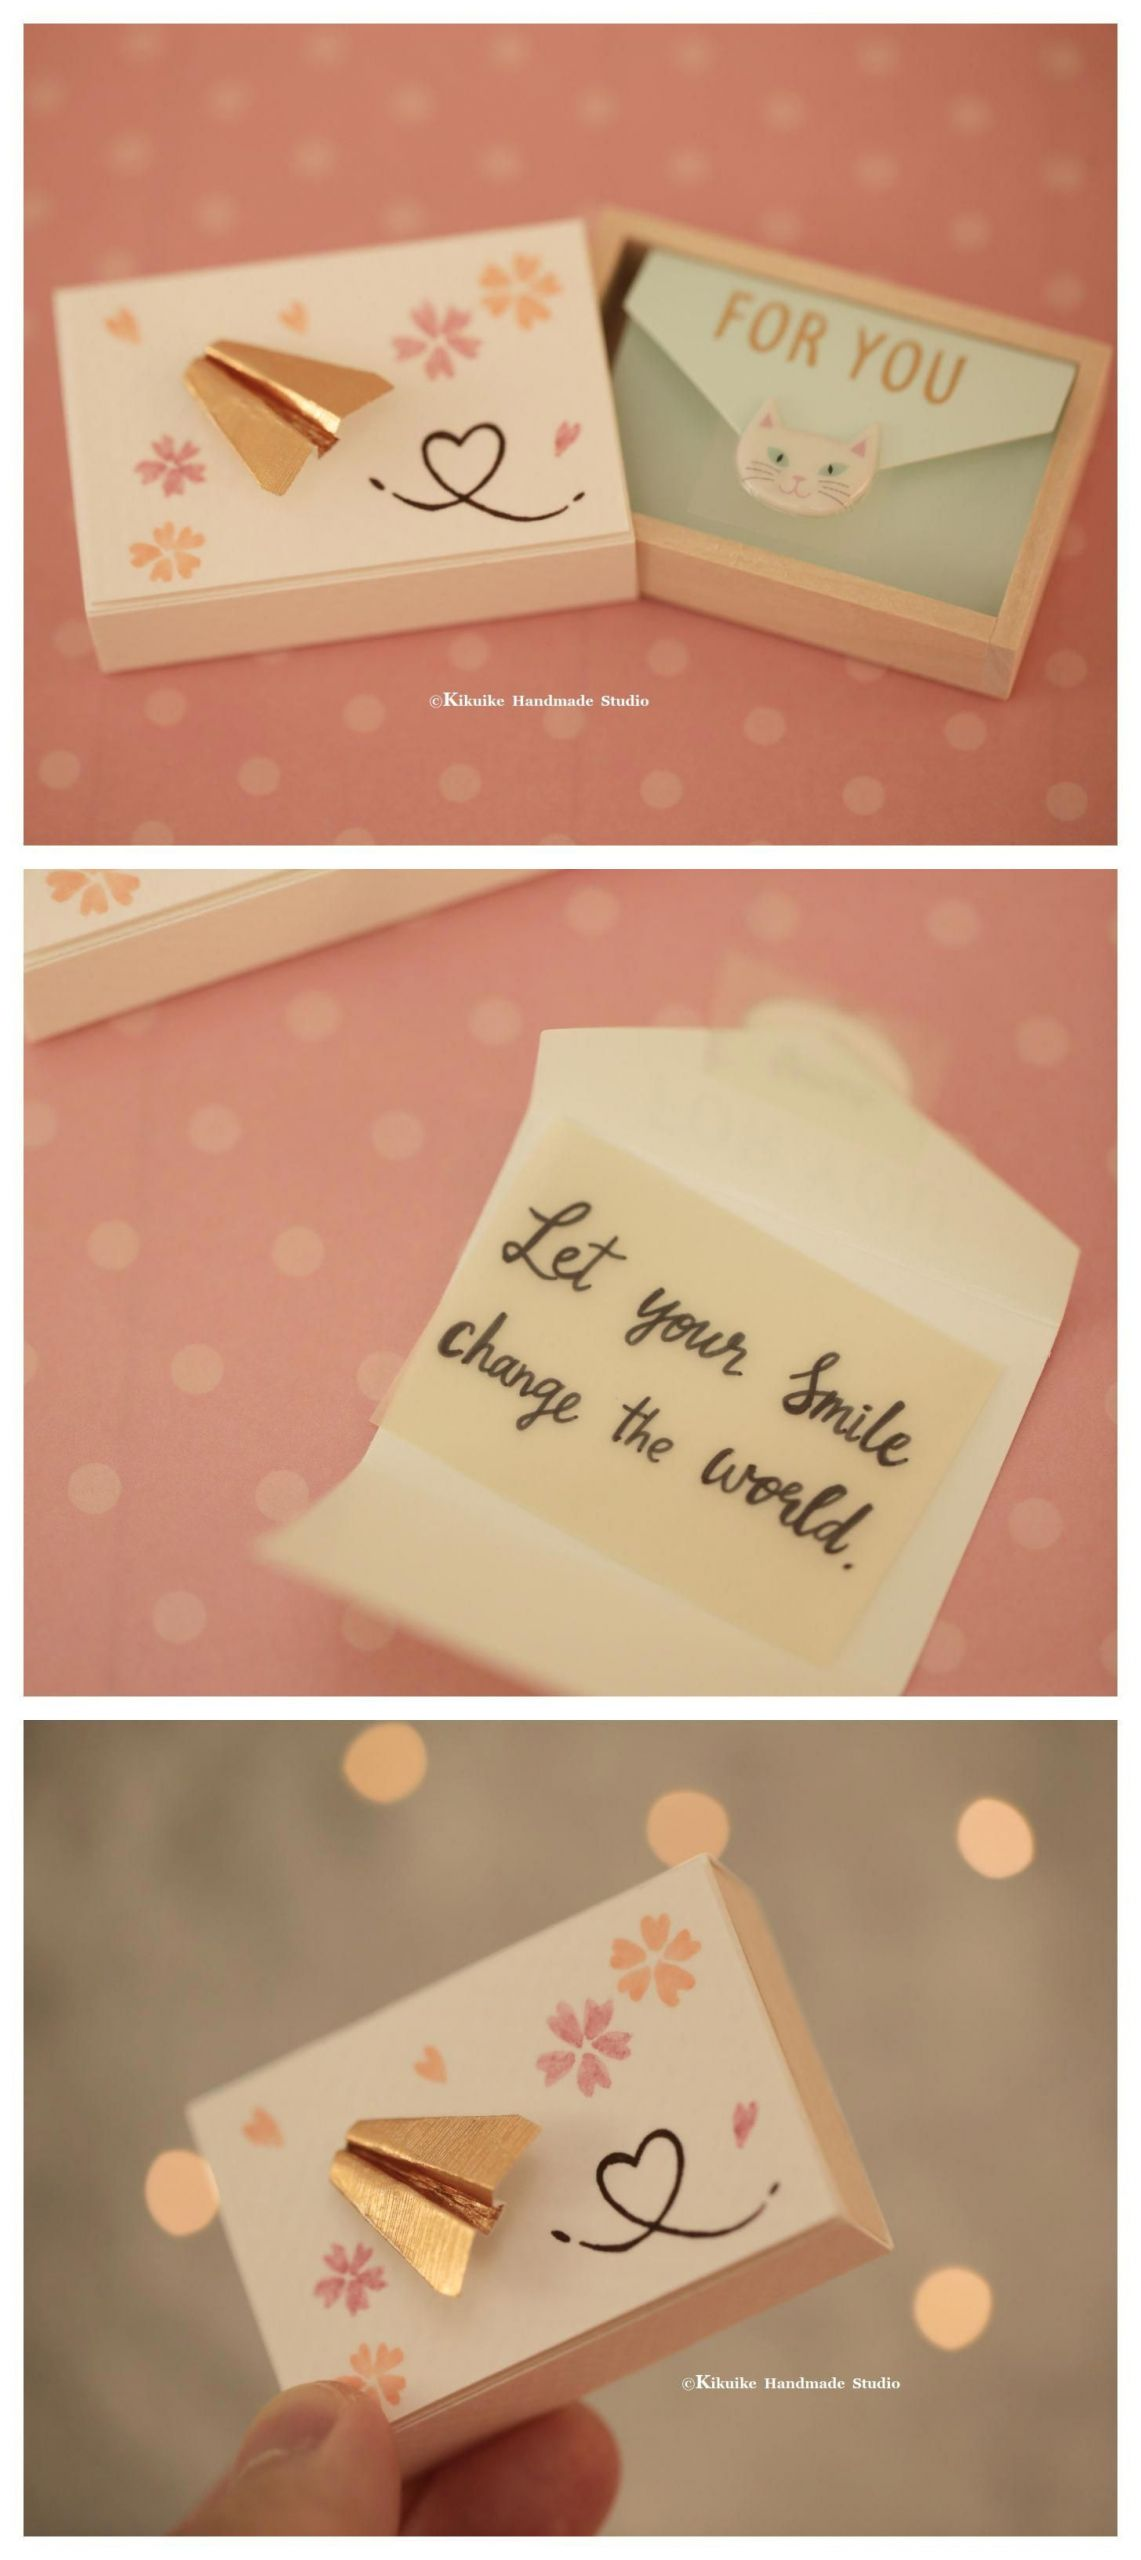 Card Ideas for Boyfriend Birthday Surprise Gifts for Him with Images Funny Love Cards